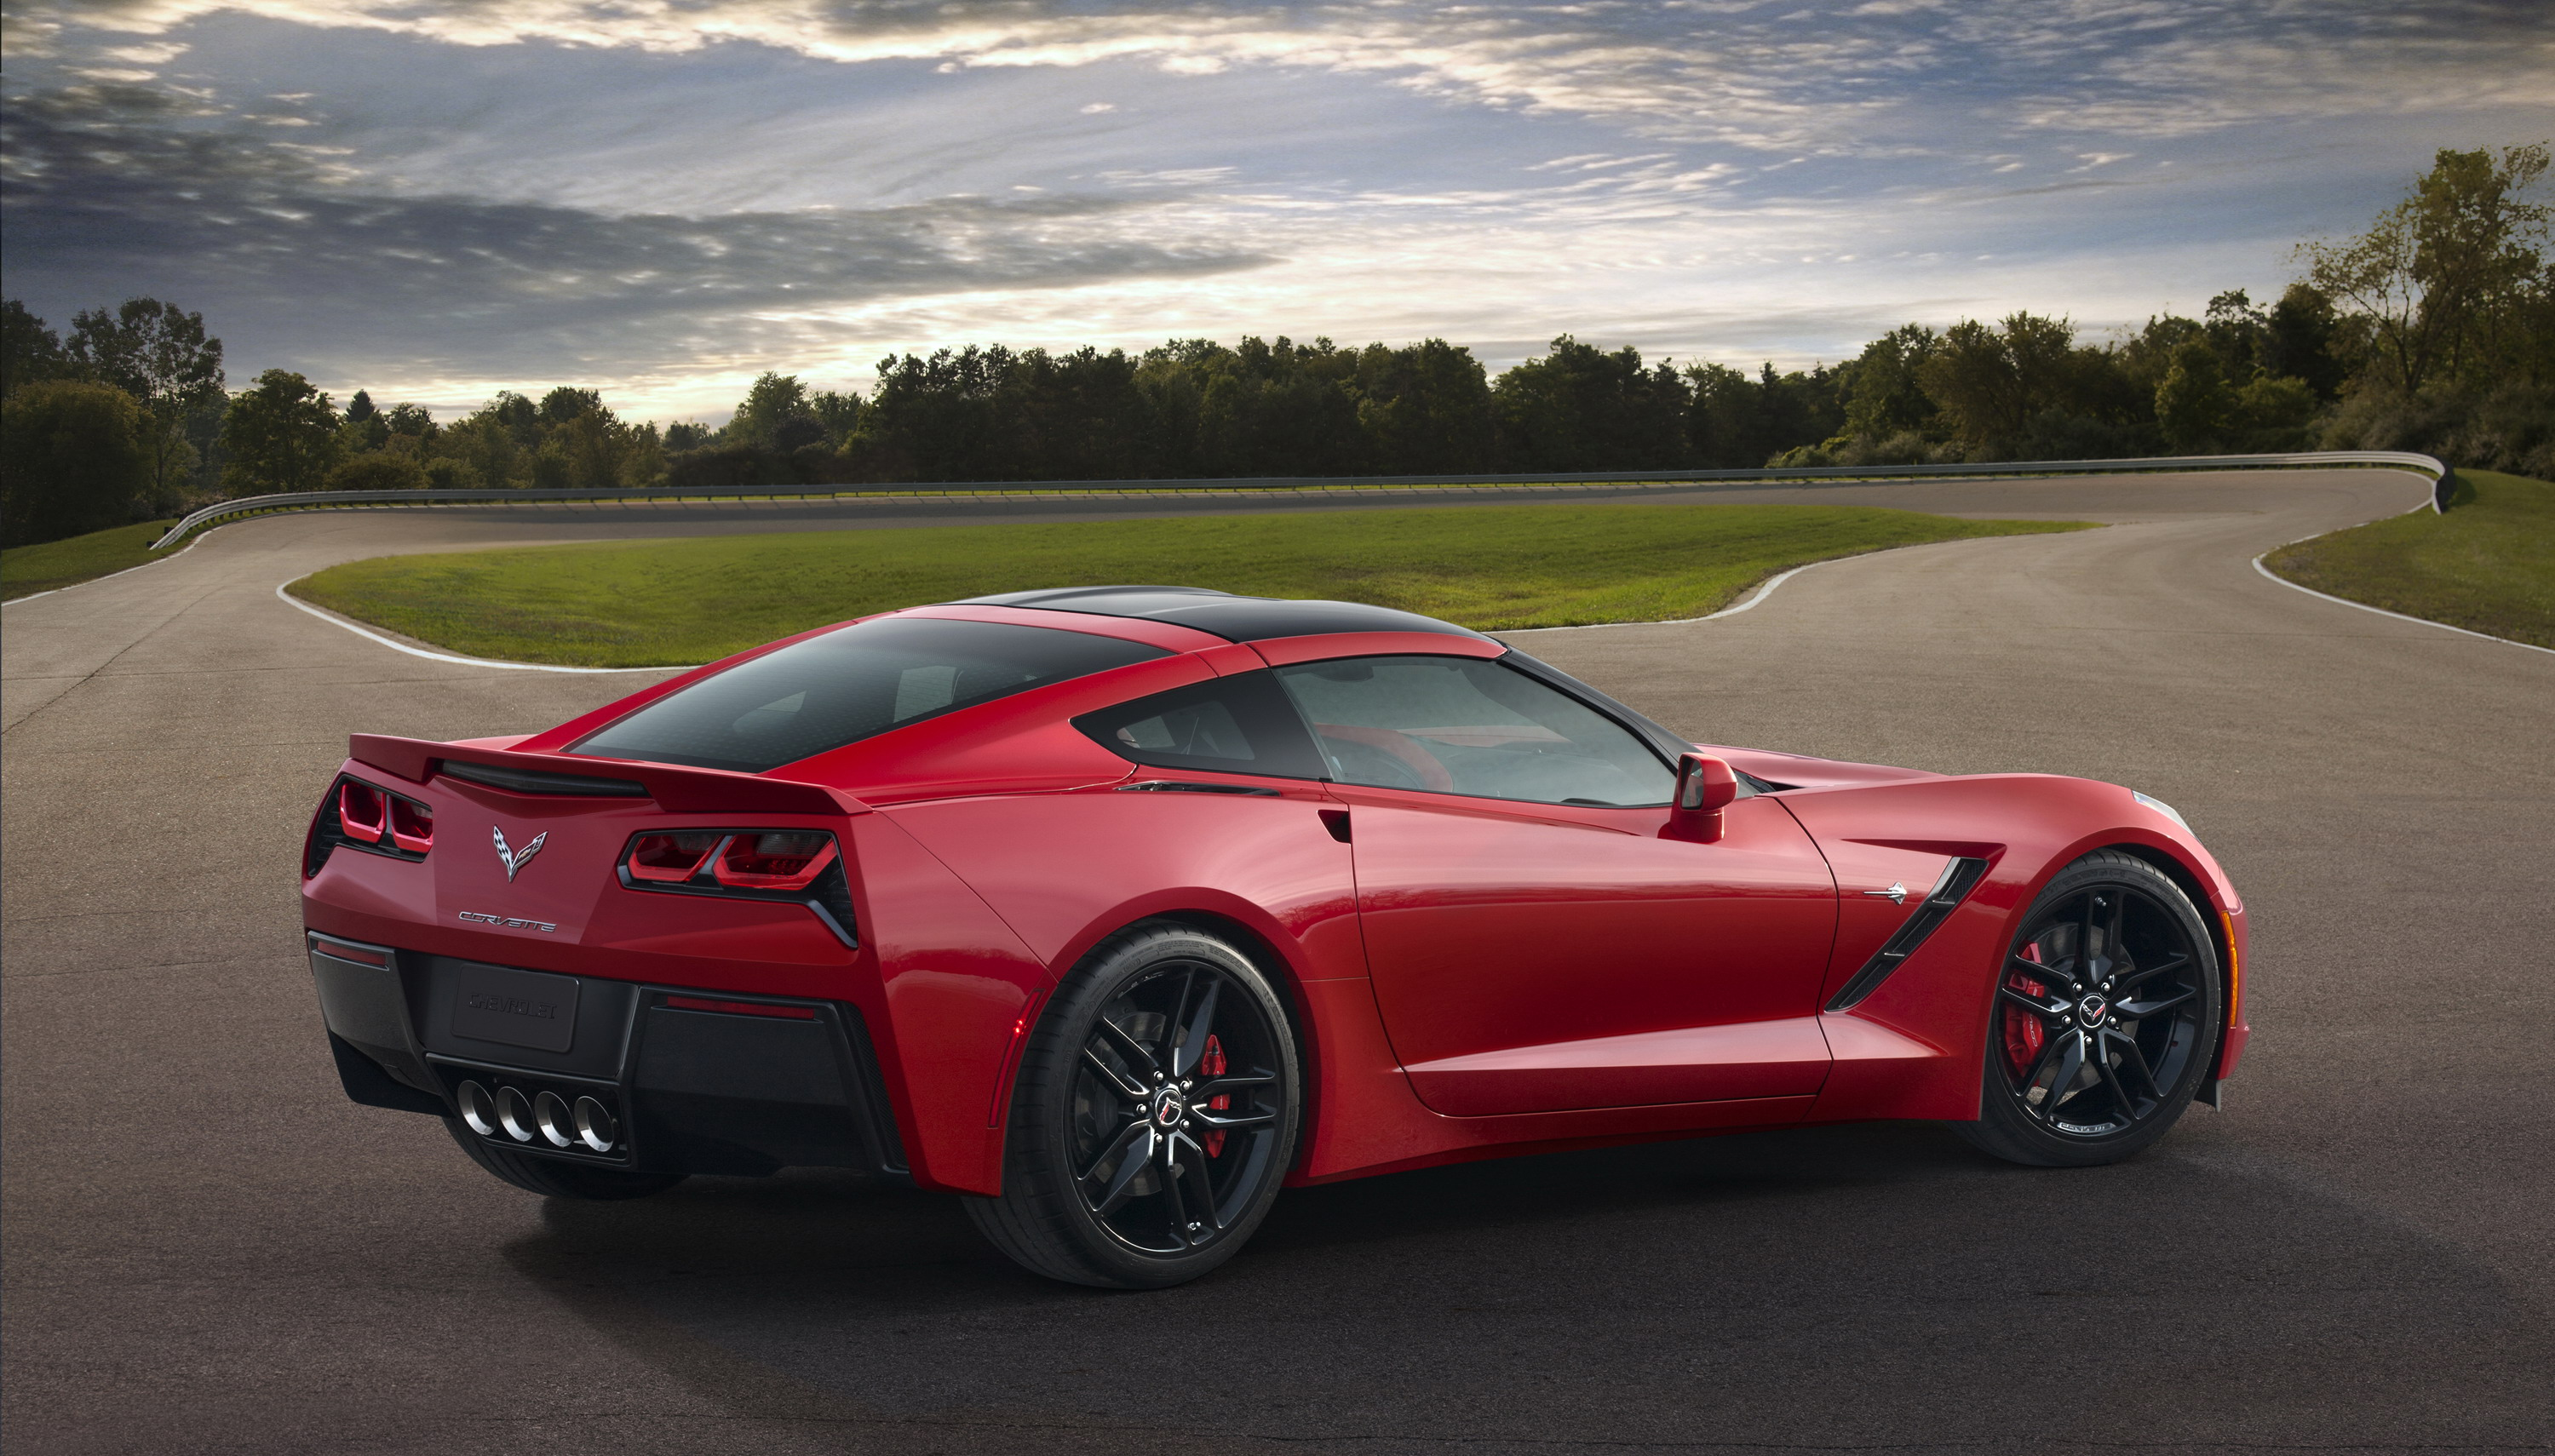 2014 - 2016 Chevrolet Corvette Stingray | Top Speed